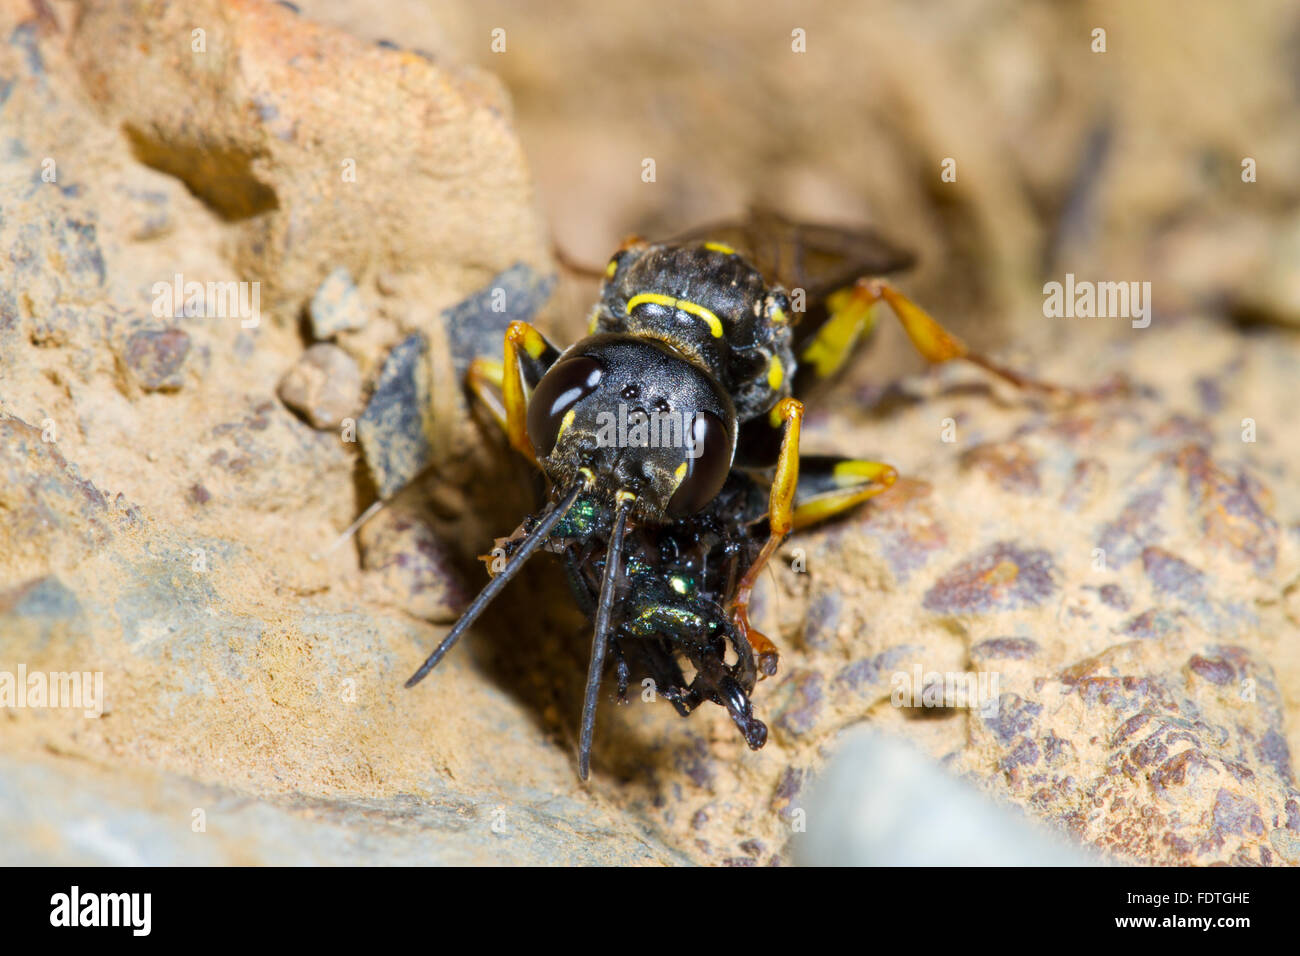 field digger wasp and fly symbiotic relationship